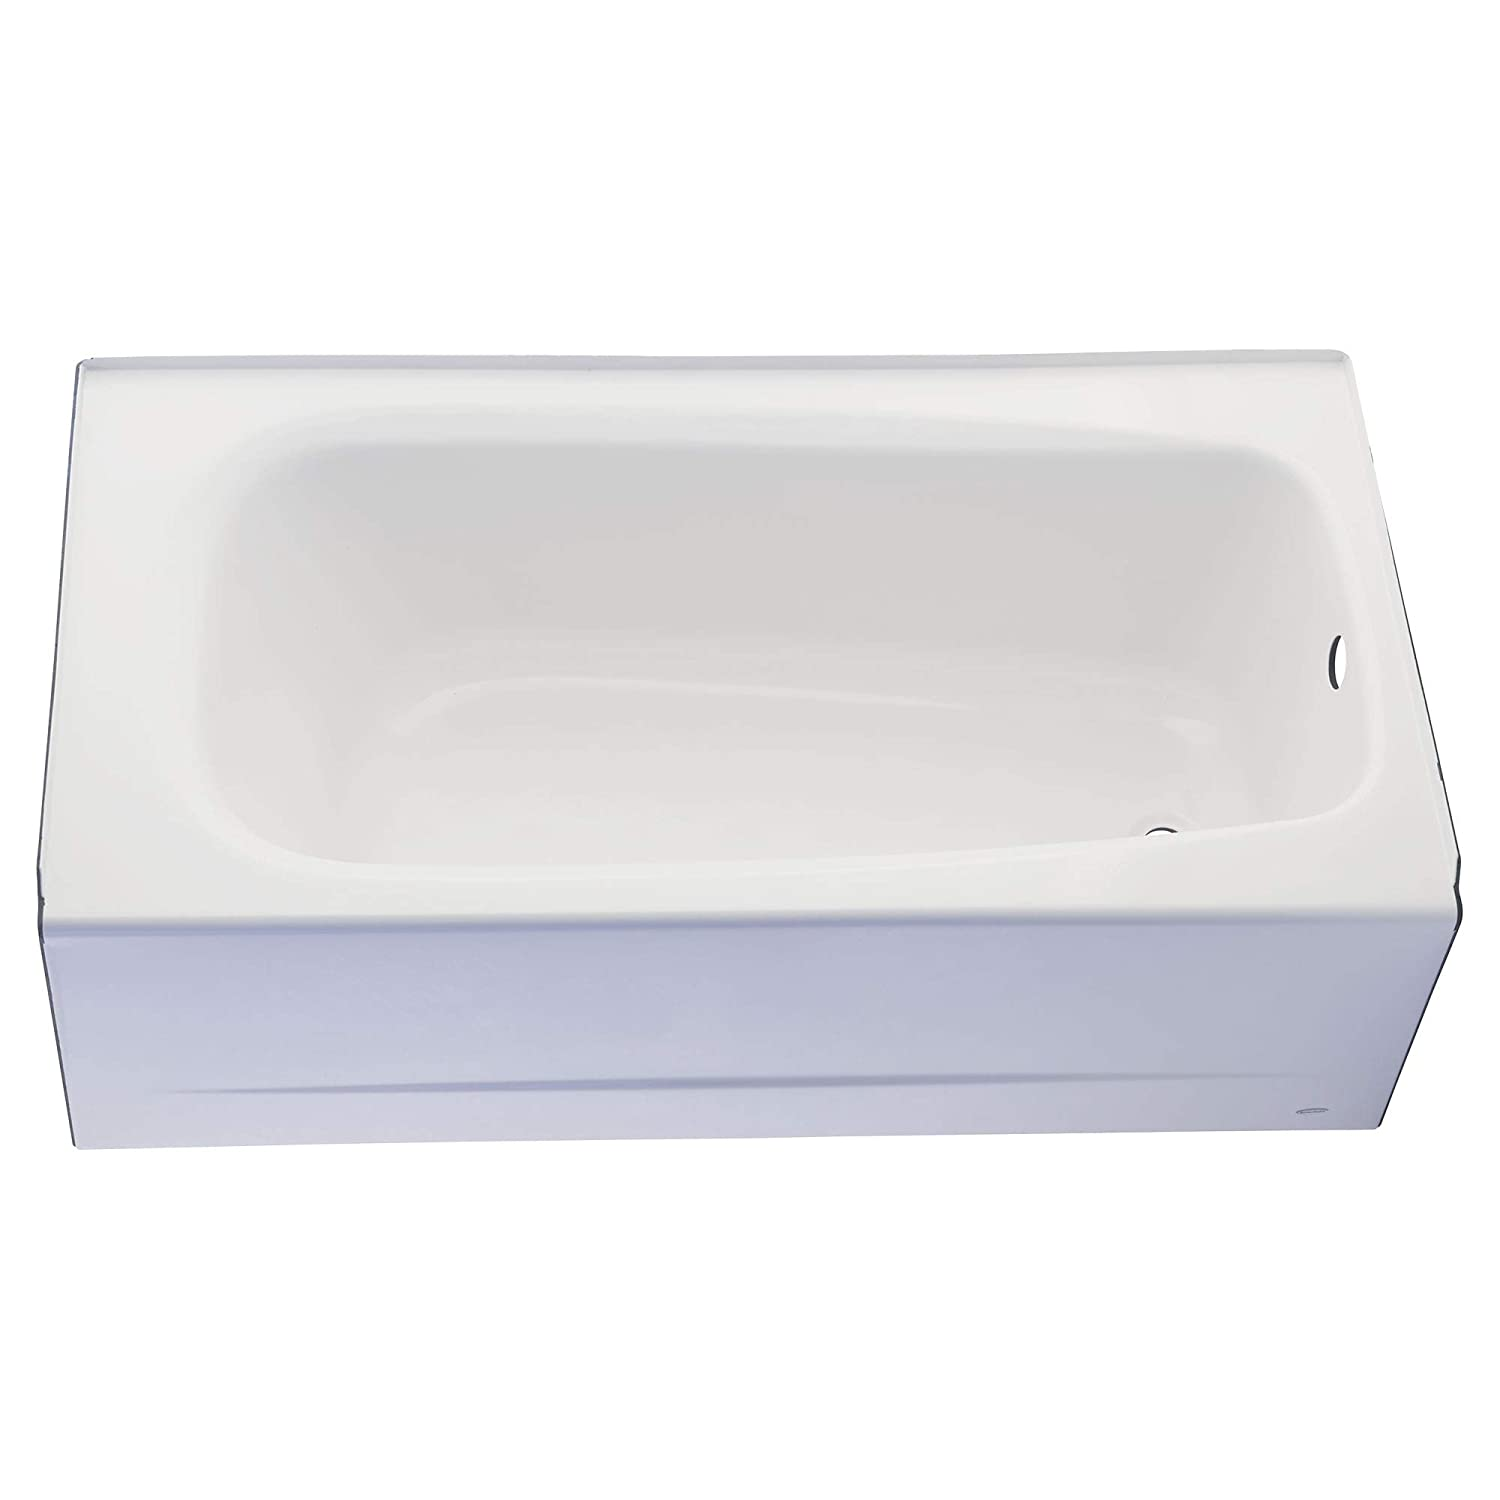 1.American Standard Cambridge Soaking Bathtub